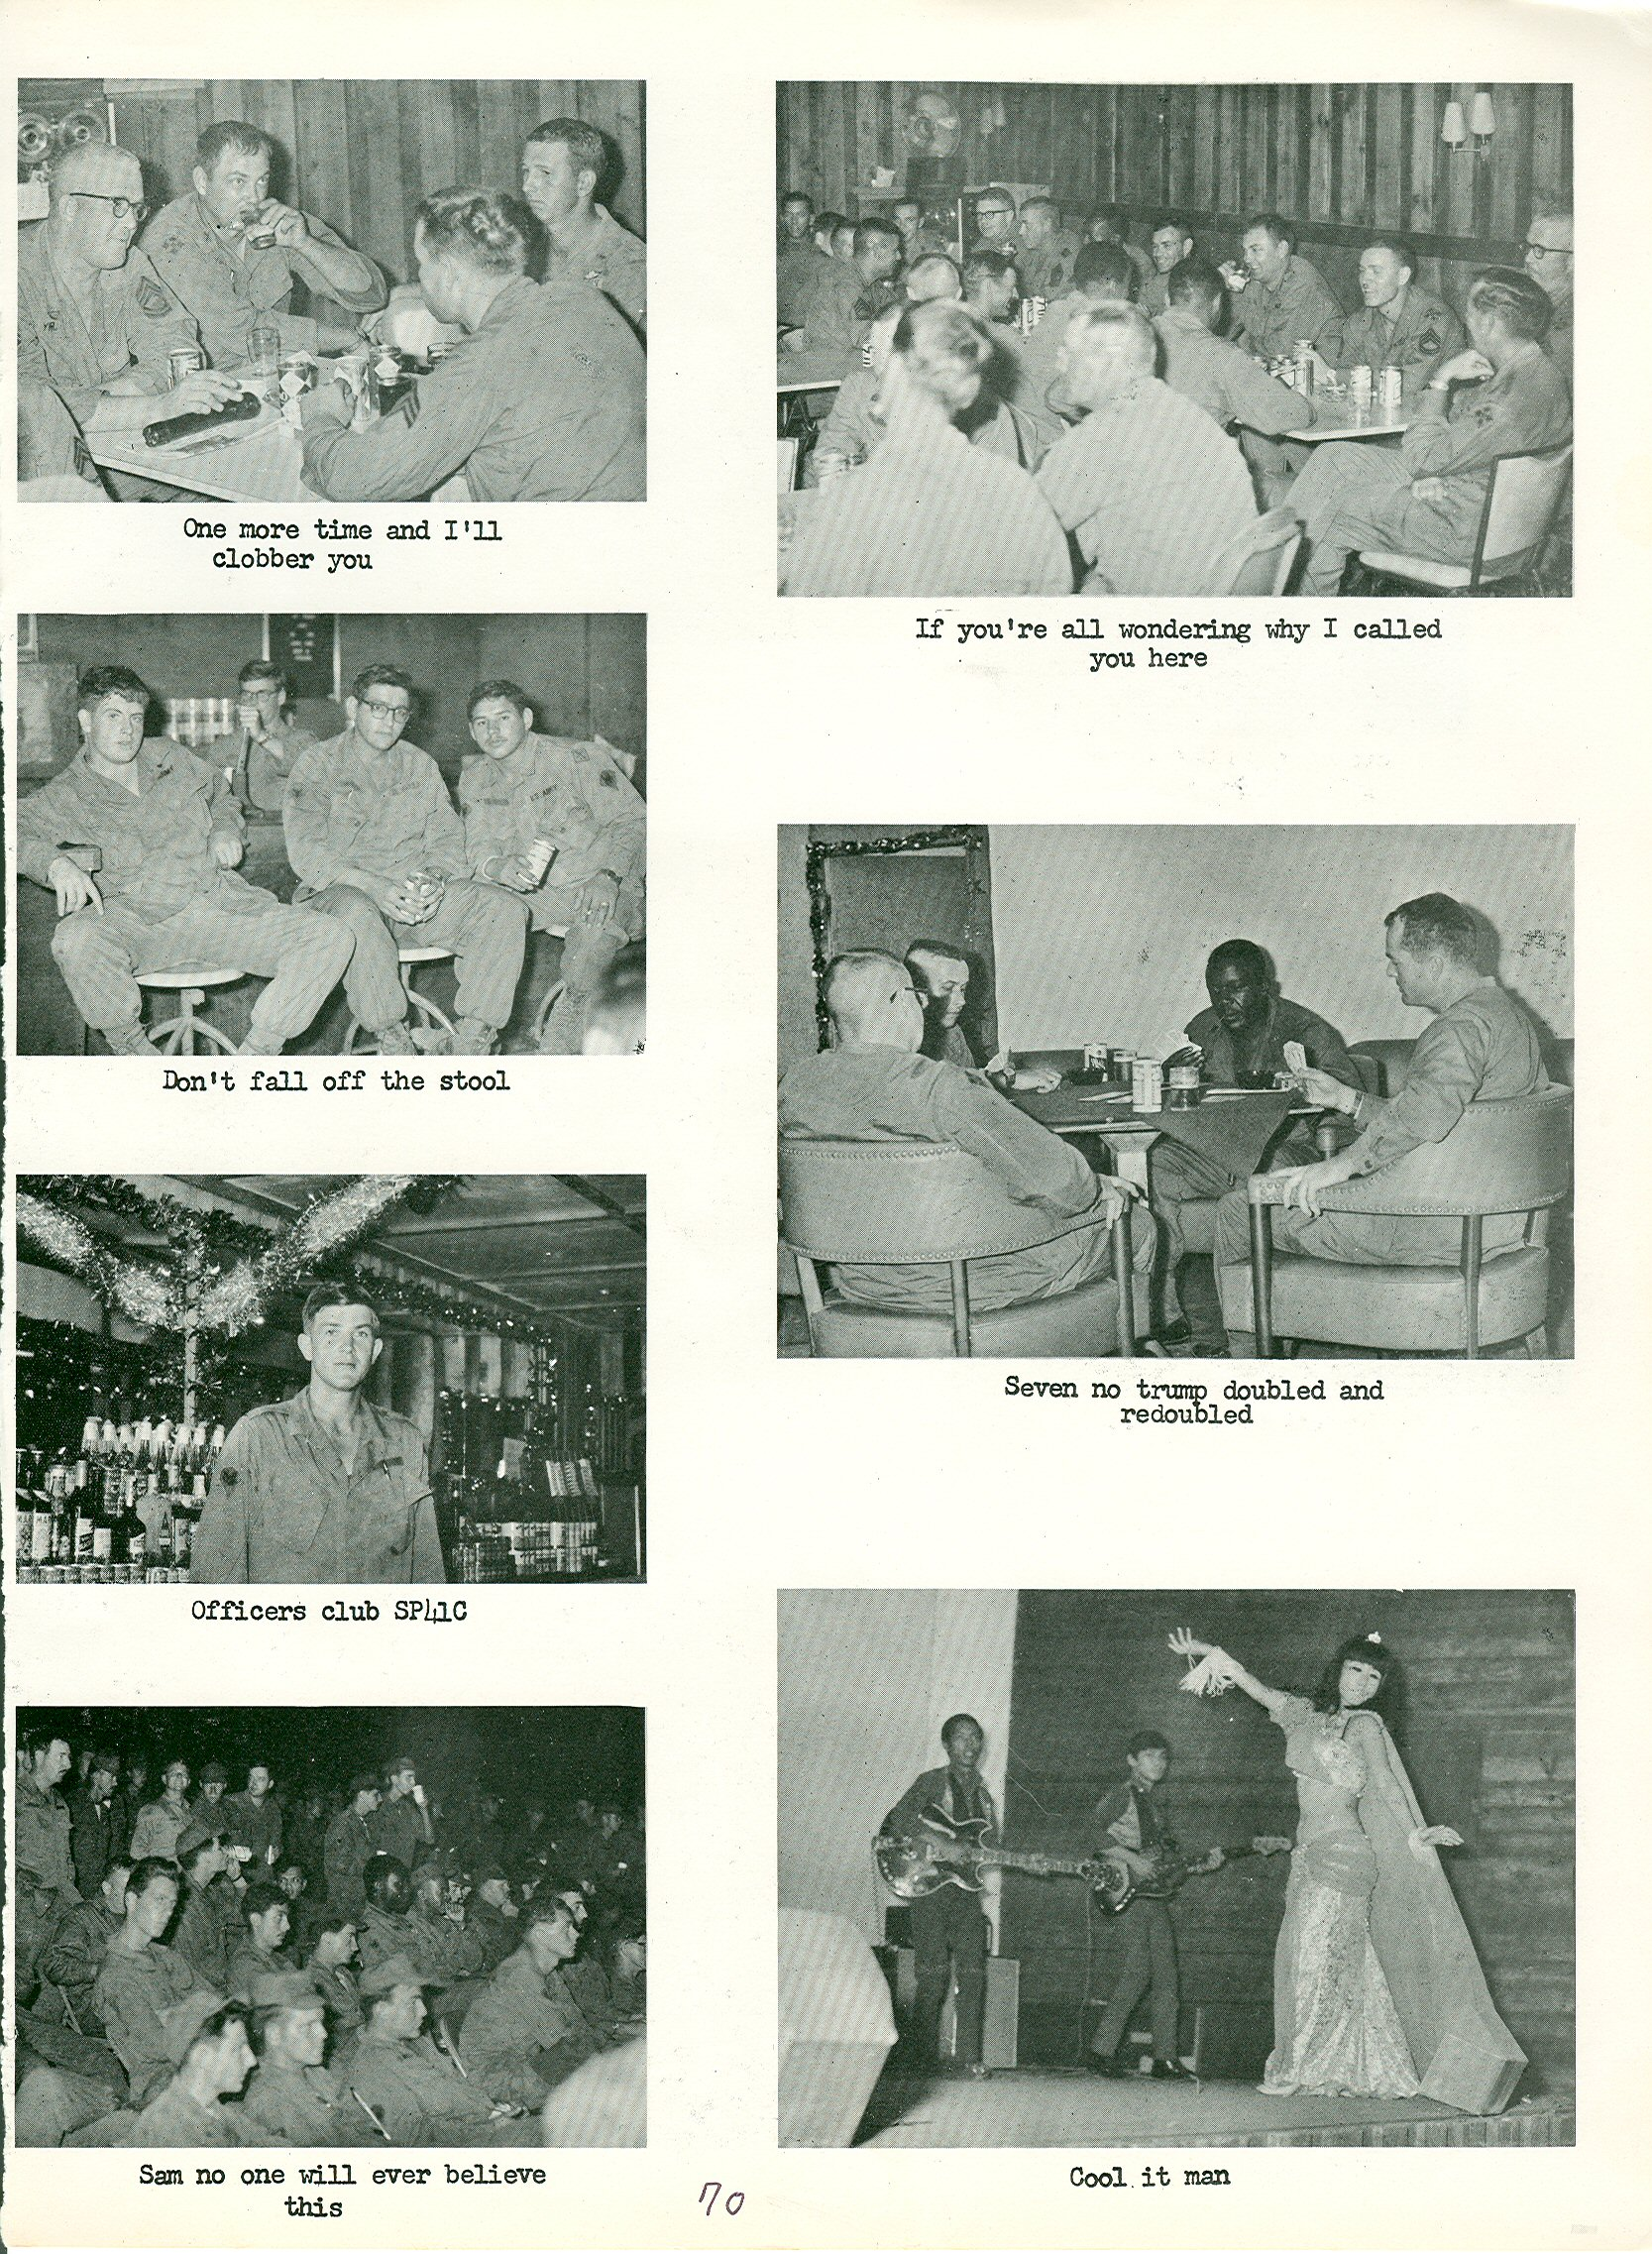 4th Avn Bn 1969 Yearbook